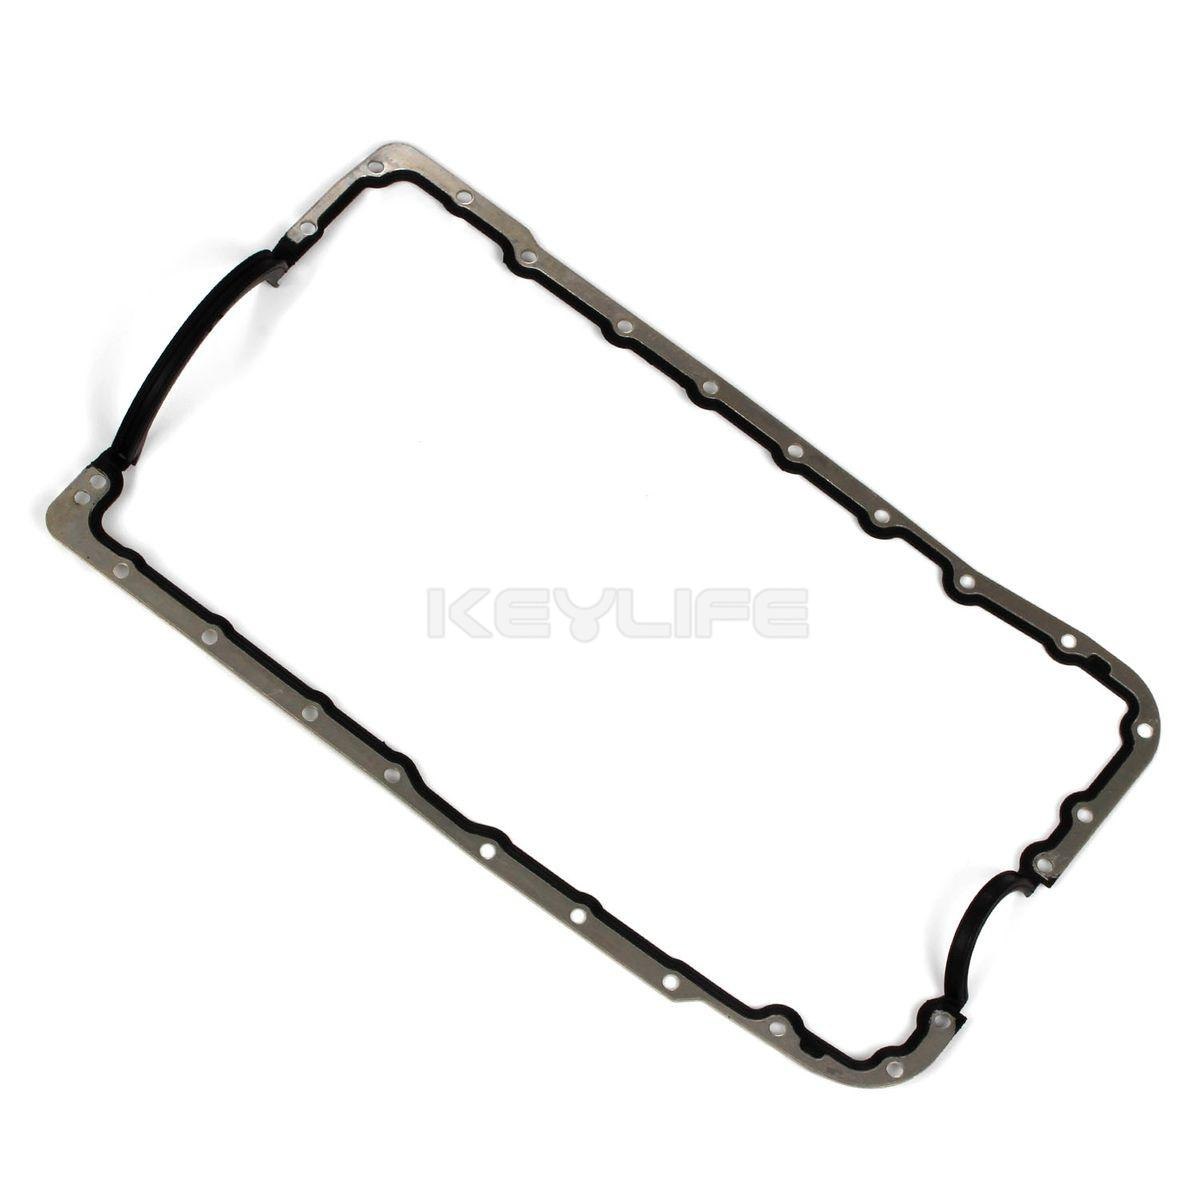 Oil Pan Gaskets Fits 94-11 FORD AEROSTAR EXPLORER MUSTANG